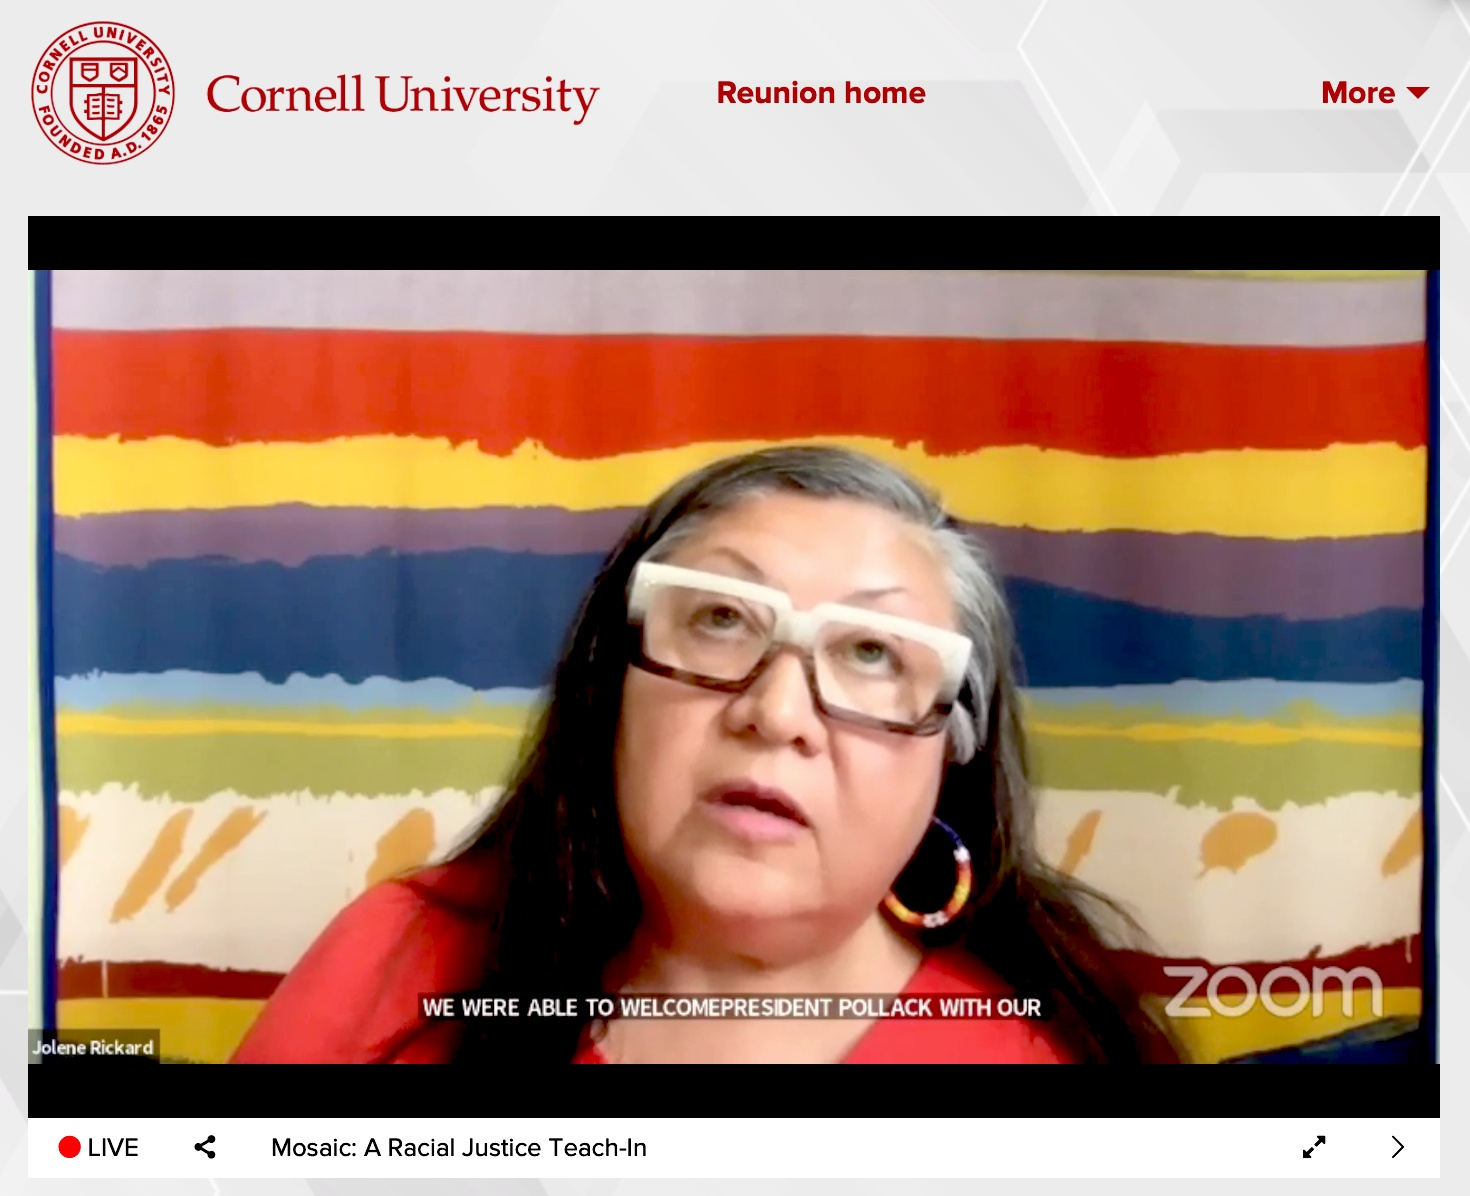 Jolene Rickard, associate professor in the American Indian and Indigenous Studies Program at Cornell